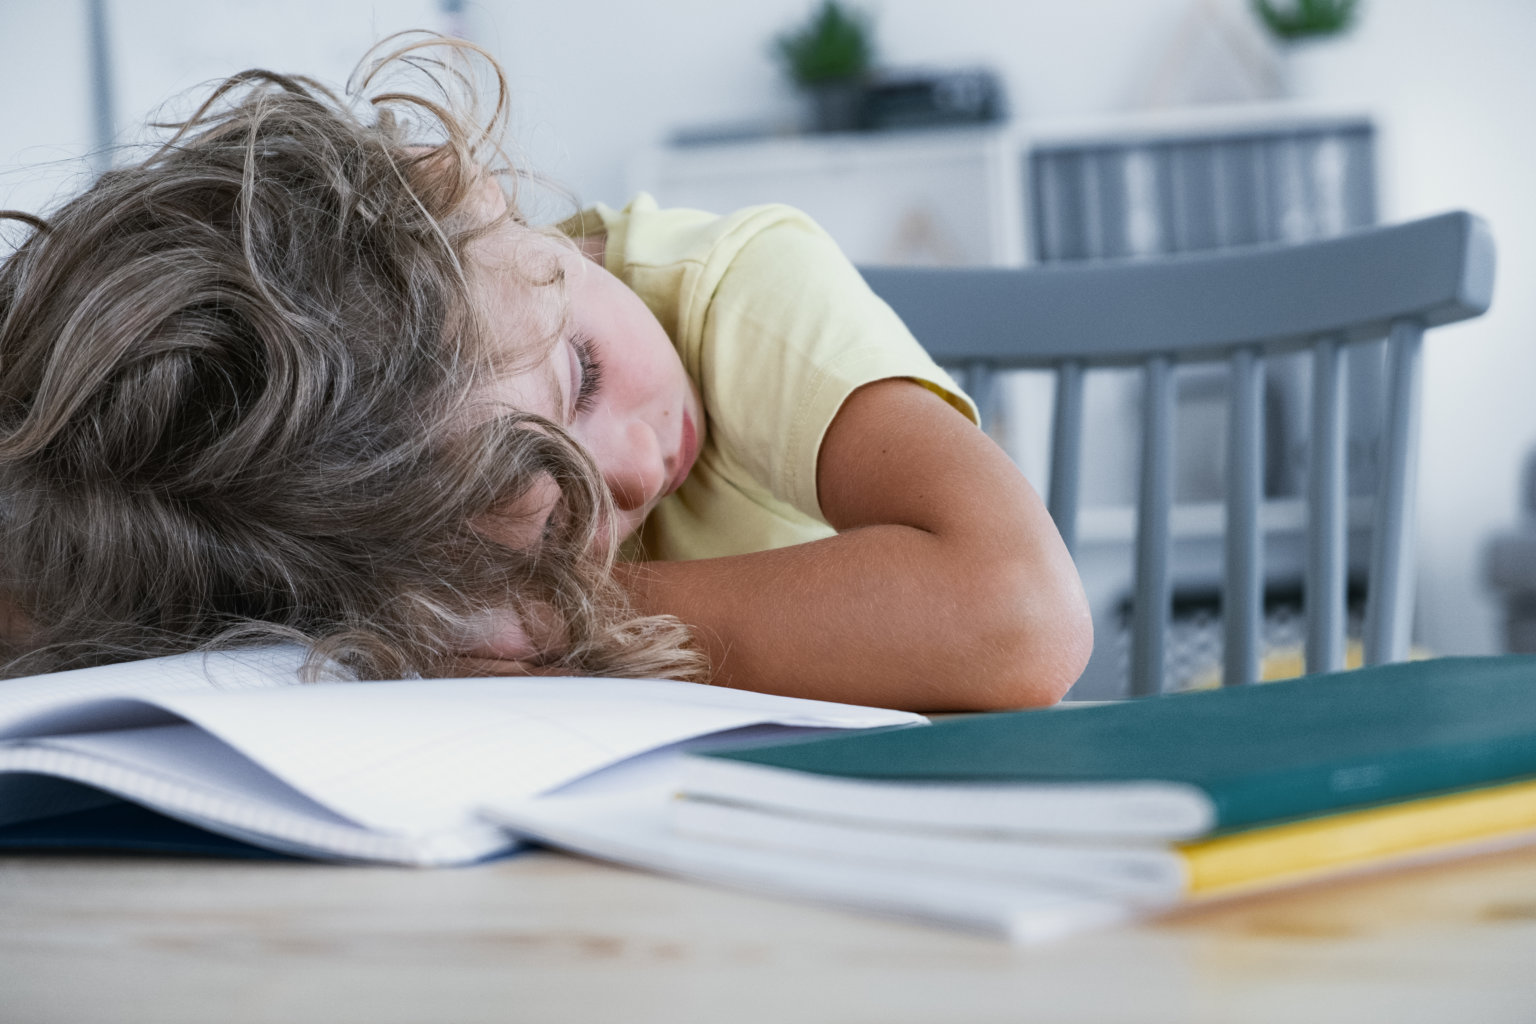 Close-up of a tired kid sleeping with his head rested on a table with a book.